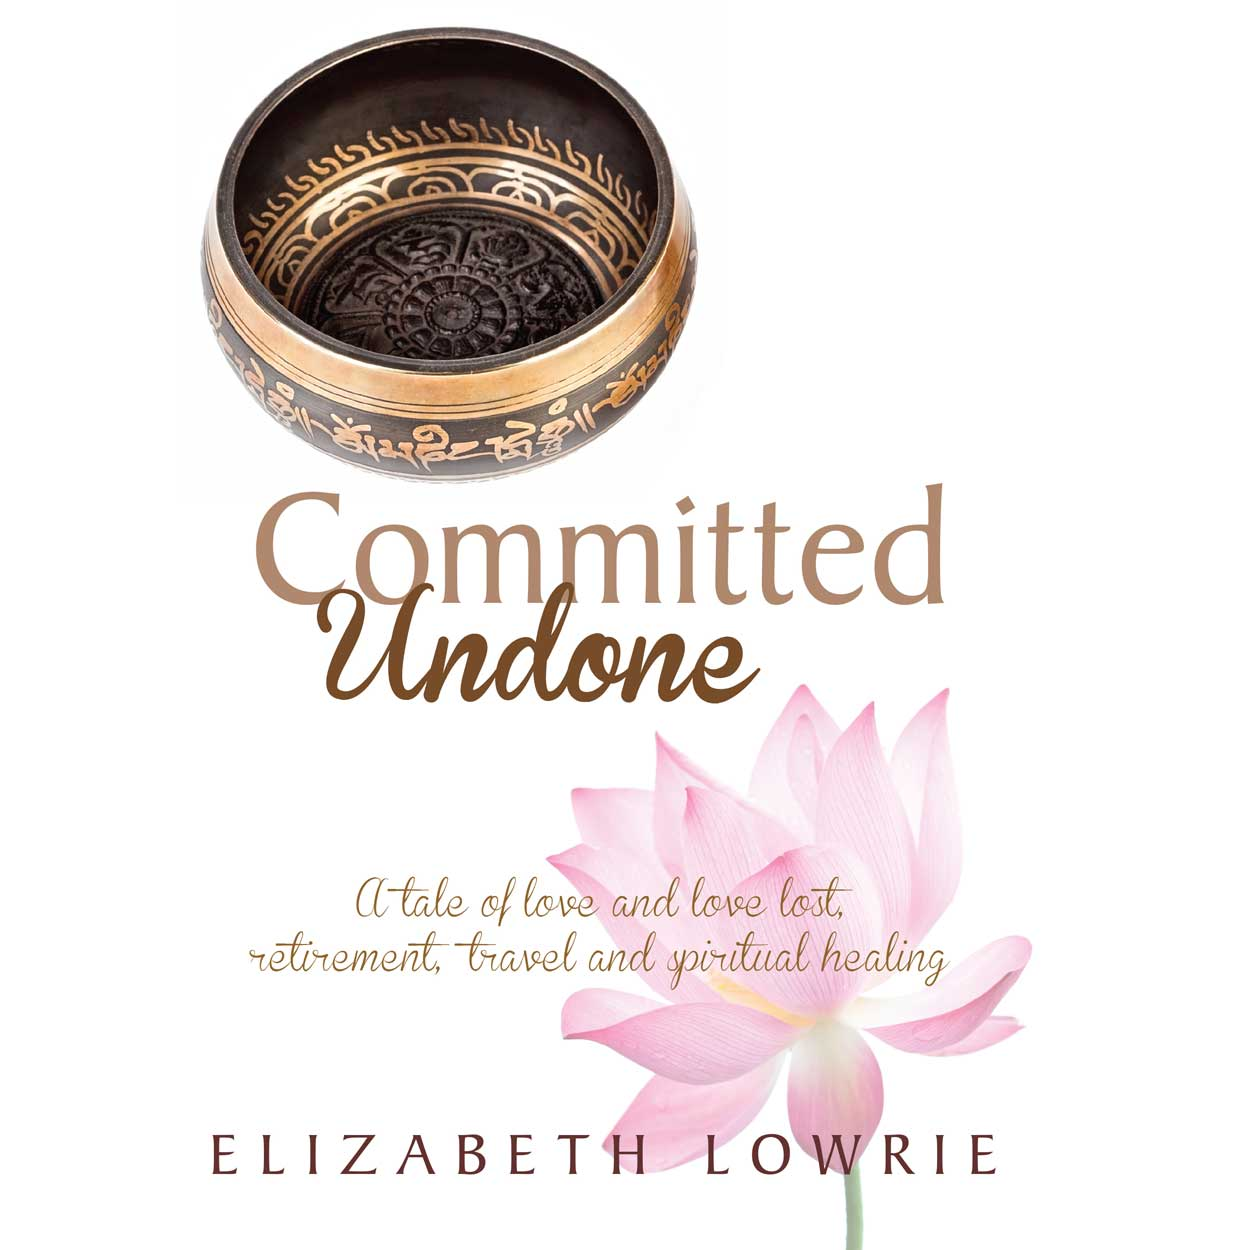 """If you have ever read  Eat, Pray, Love  and  Committed  written by Elizabeth Gilbert then you will love this book. It's written by the first wife of Felipe (the romantic Brazilian, played by Javier Bardem in the movie  Eat Pray Love ). In  Committed Undone ,  Elizabeth Lowrie  tells of her distress at having 'supposed details' of her divorce being marketed globally by Gilbert and how she healed from that distressing experience. The book, though not wildly promoted, has had rave reviews. Its author is also an accomplished Dream Interpreter and runs workshops in Canberra.""  Find out more here."